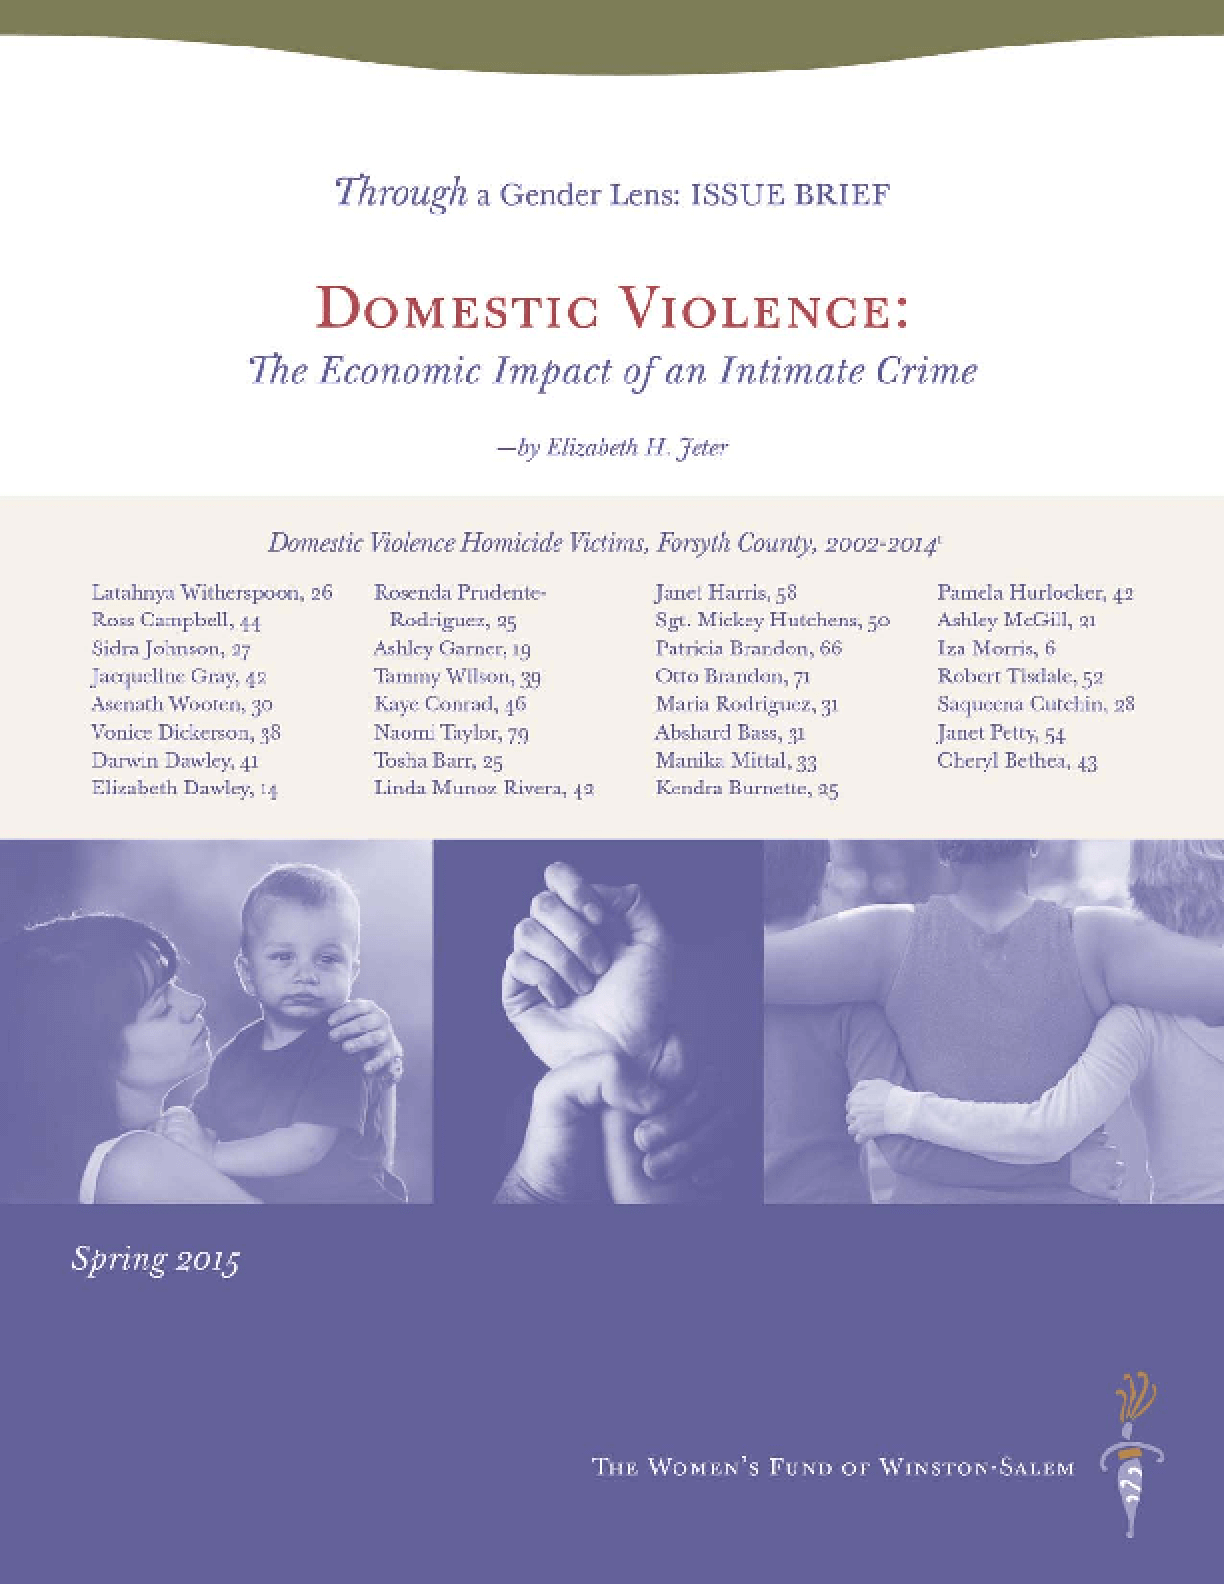 Domestic Violence:The Economic Impact of an Intimate Crime